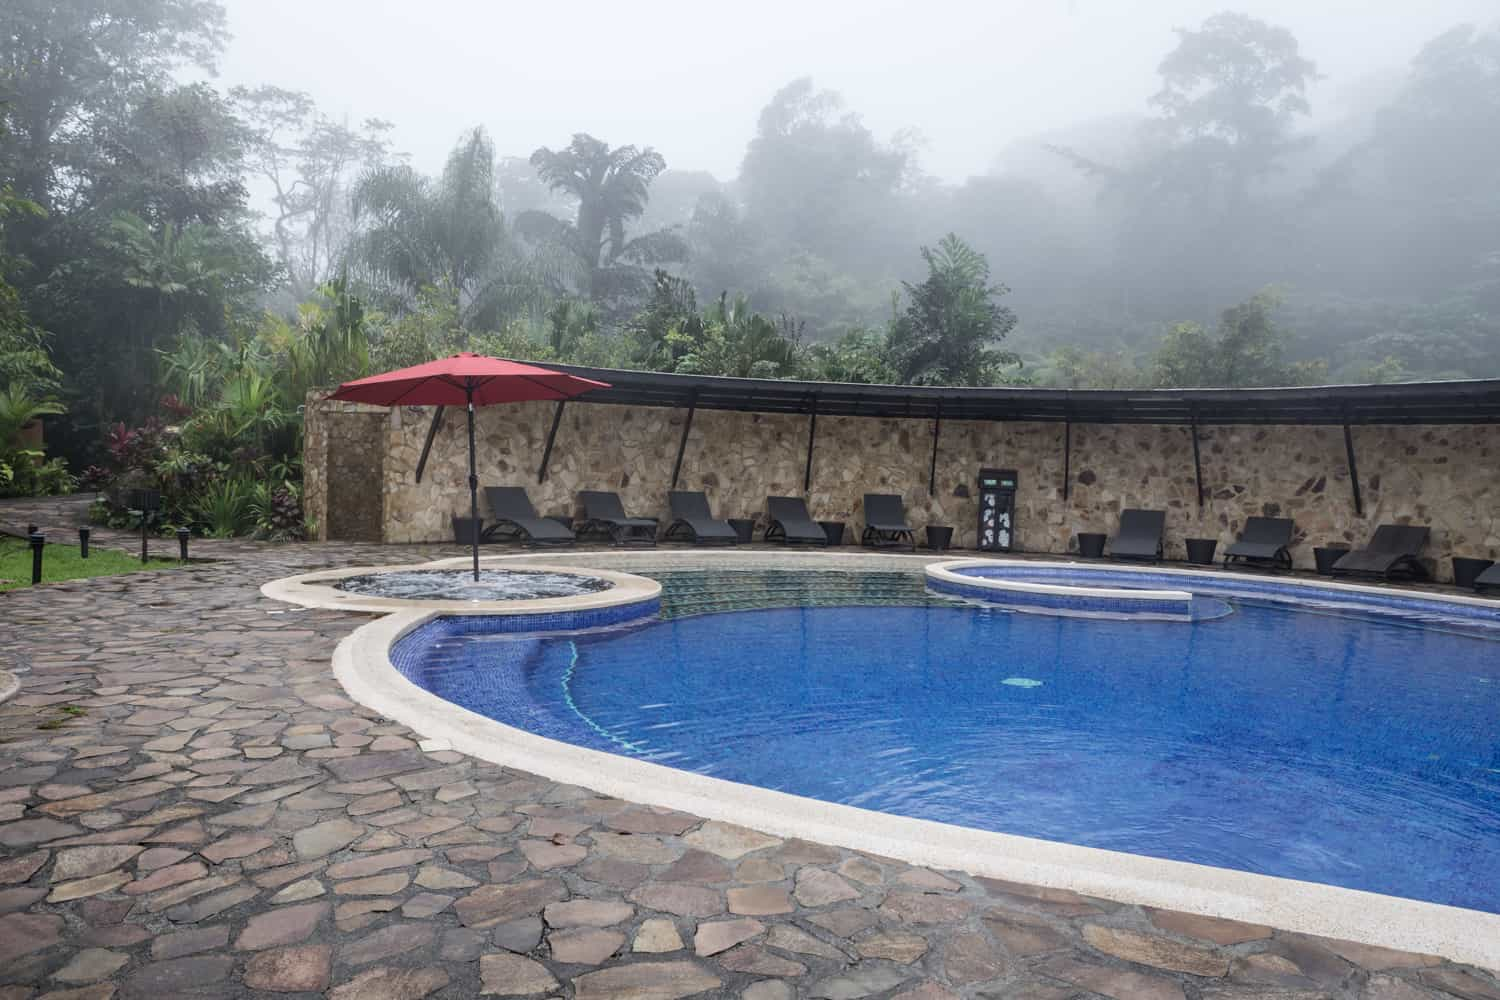 Pool area at Rio Celeste Hideaway Hotel for intimate wedding reception.